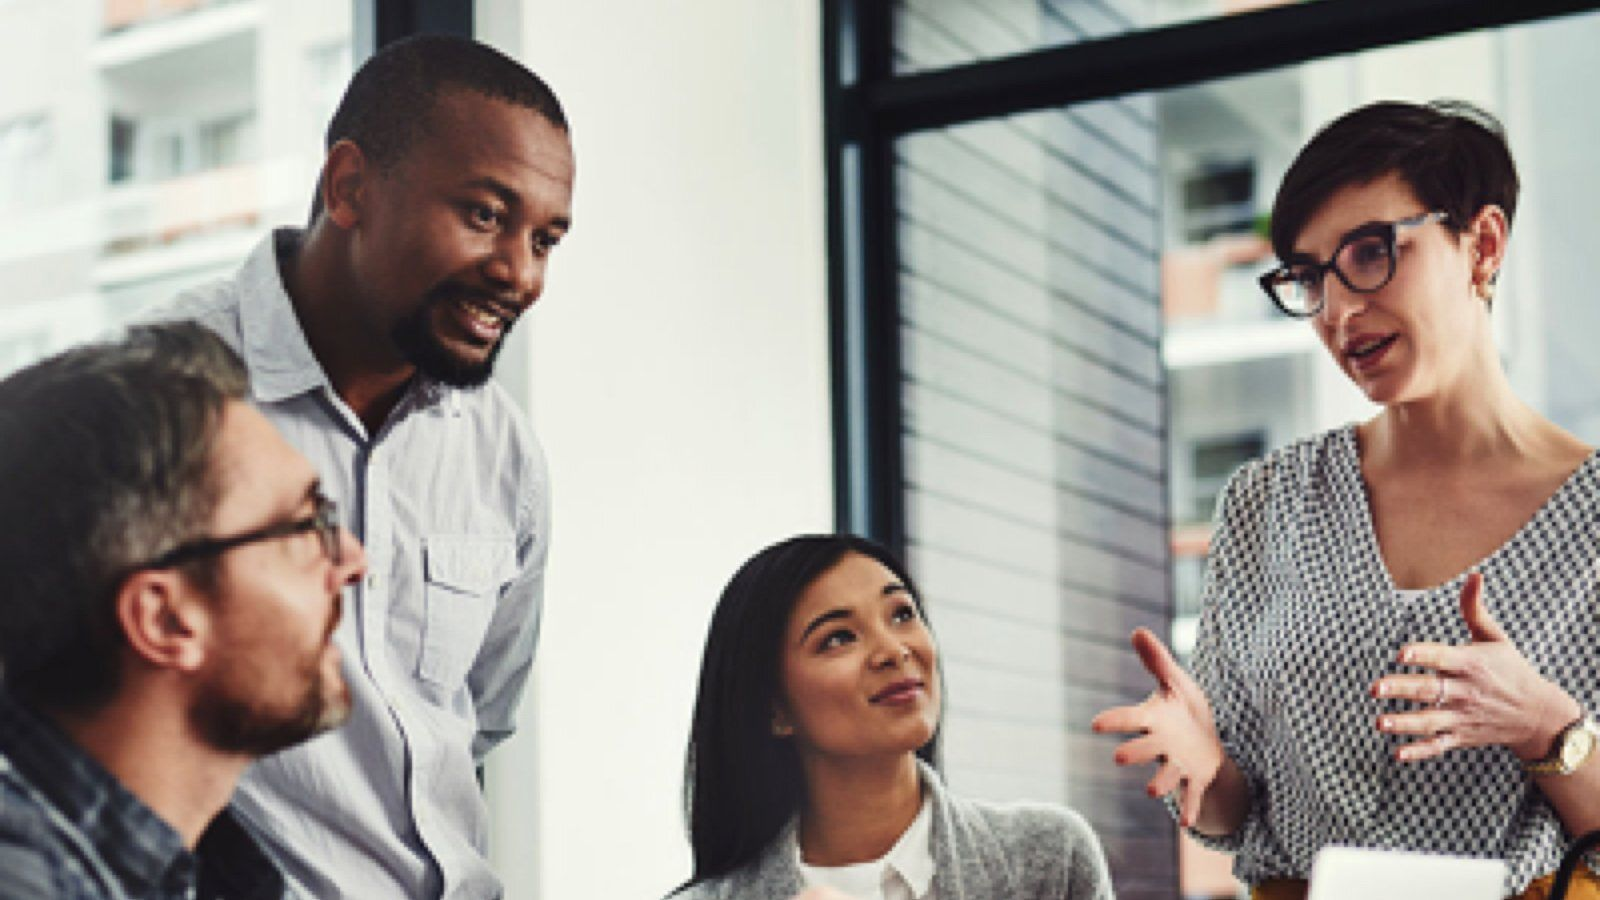 About-Our-Culture-People-at-Work